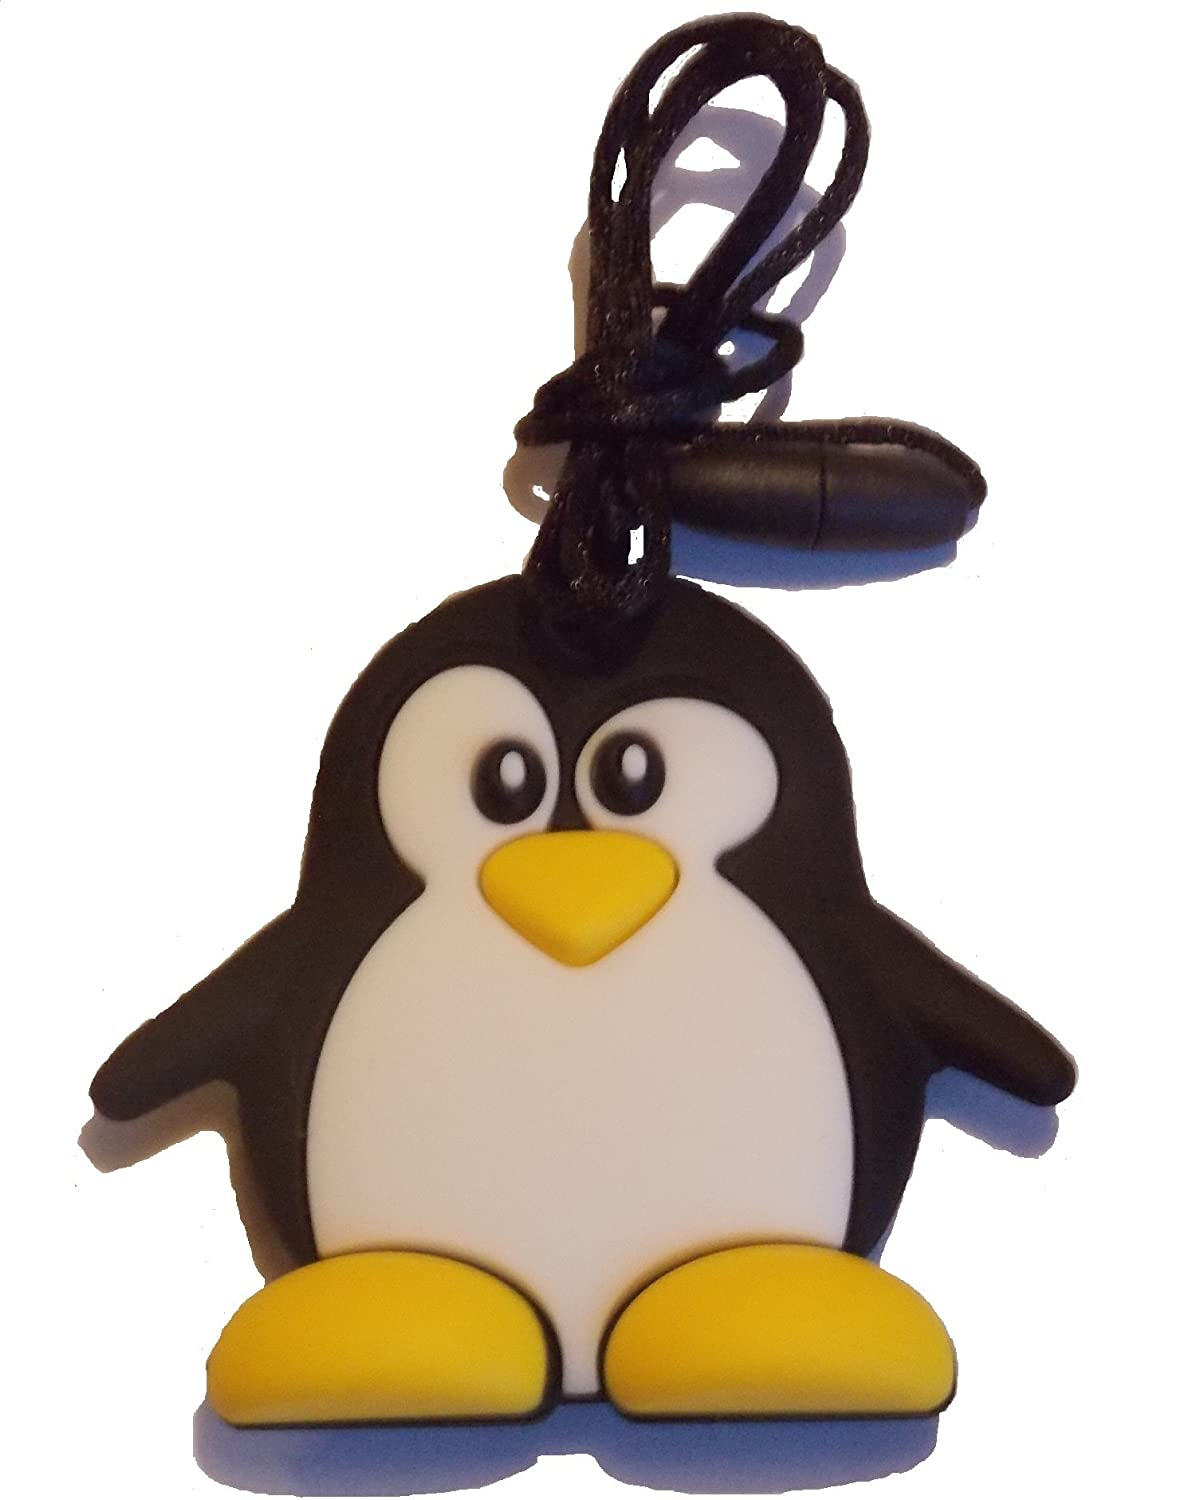 ChuChumz Chewelry Sensory Chews For Children With Autism ADHD Who Need To Chew Bite or Fidget Penguin Chewy Necklace Aids Concentration Safe Stop Biting Toys That Work